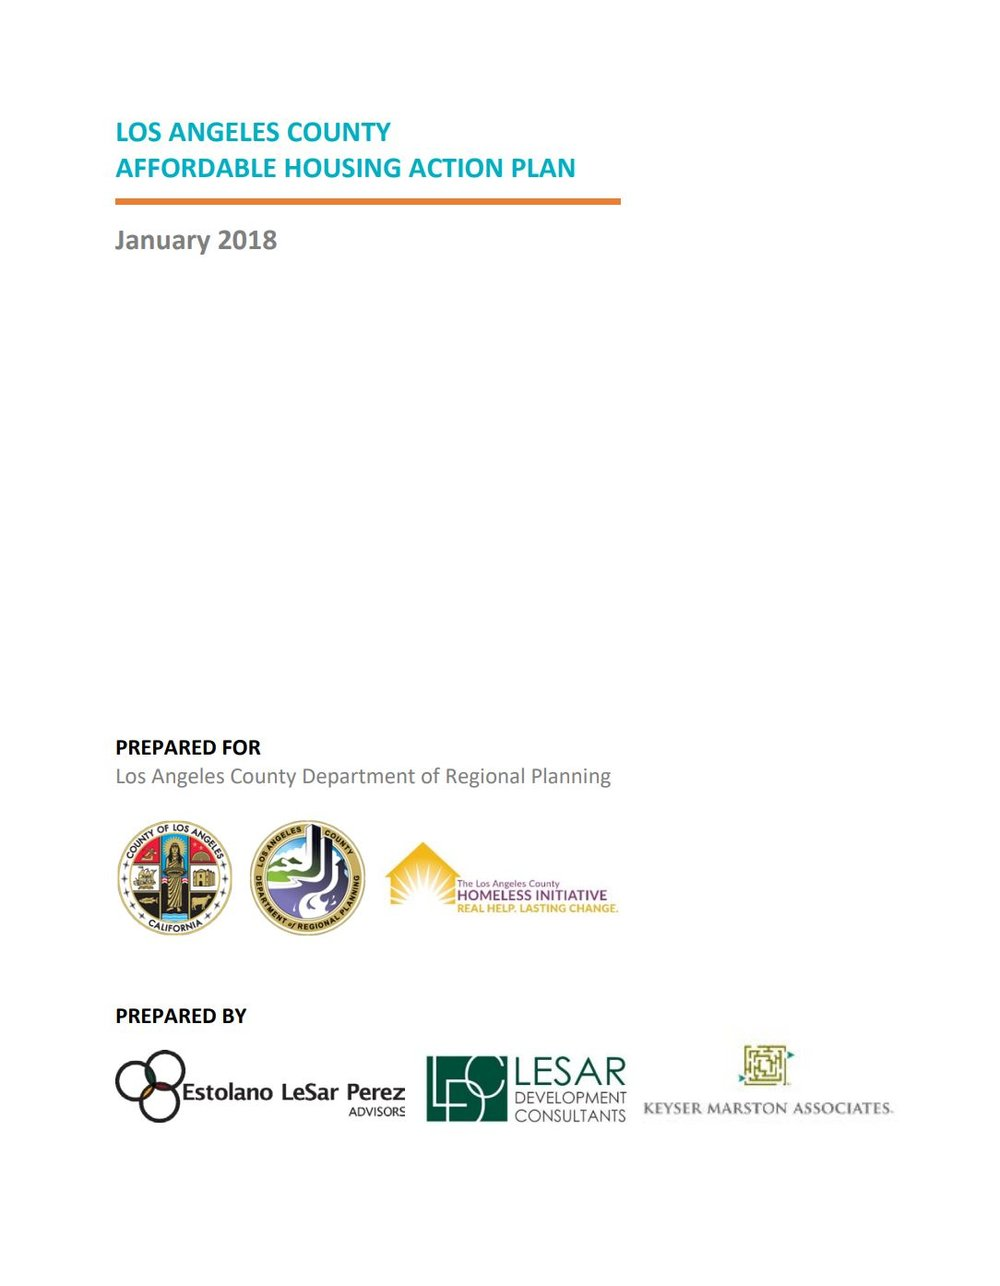 LA County<br>Affordable Housing Action Plan